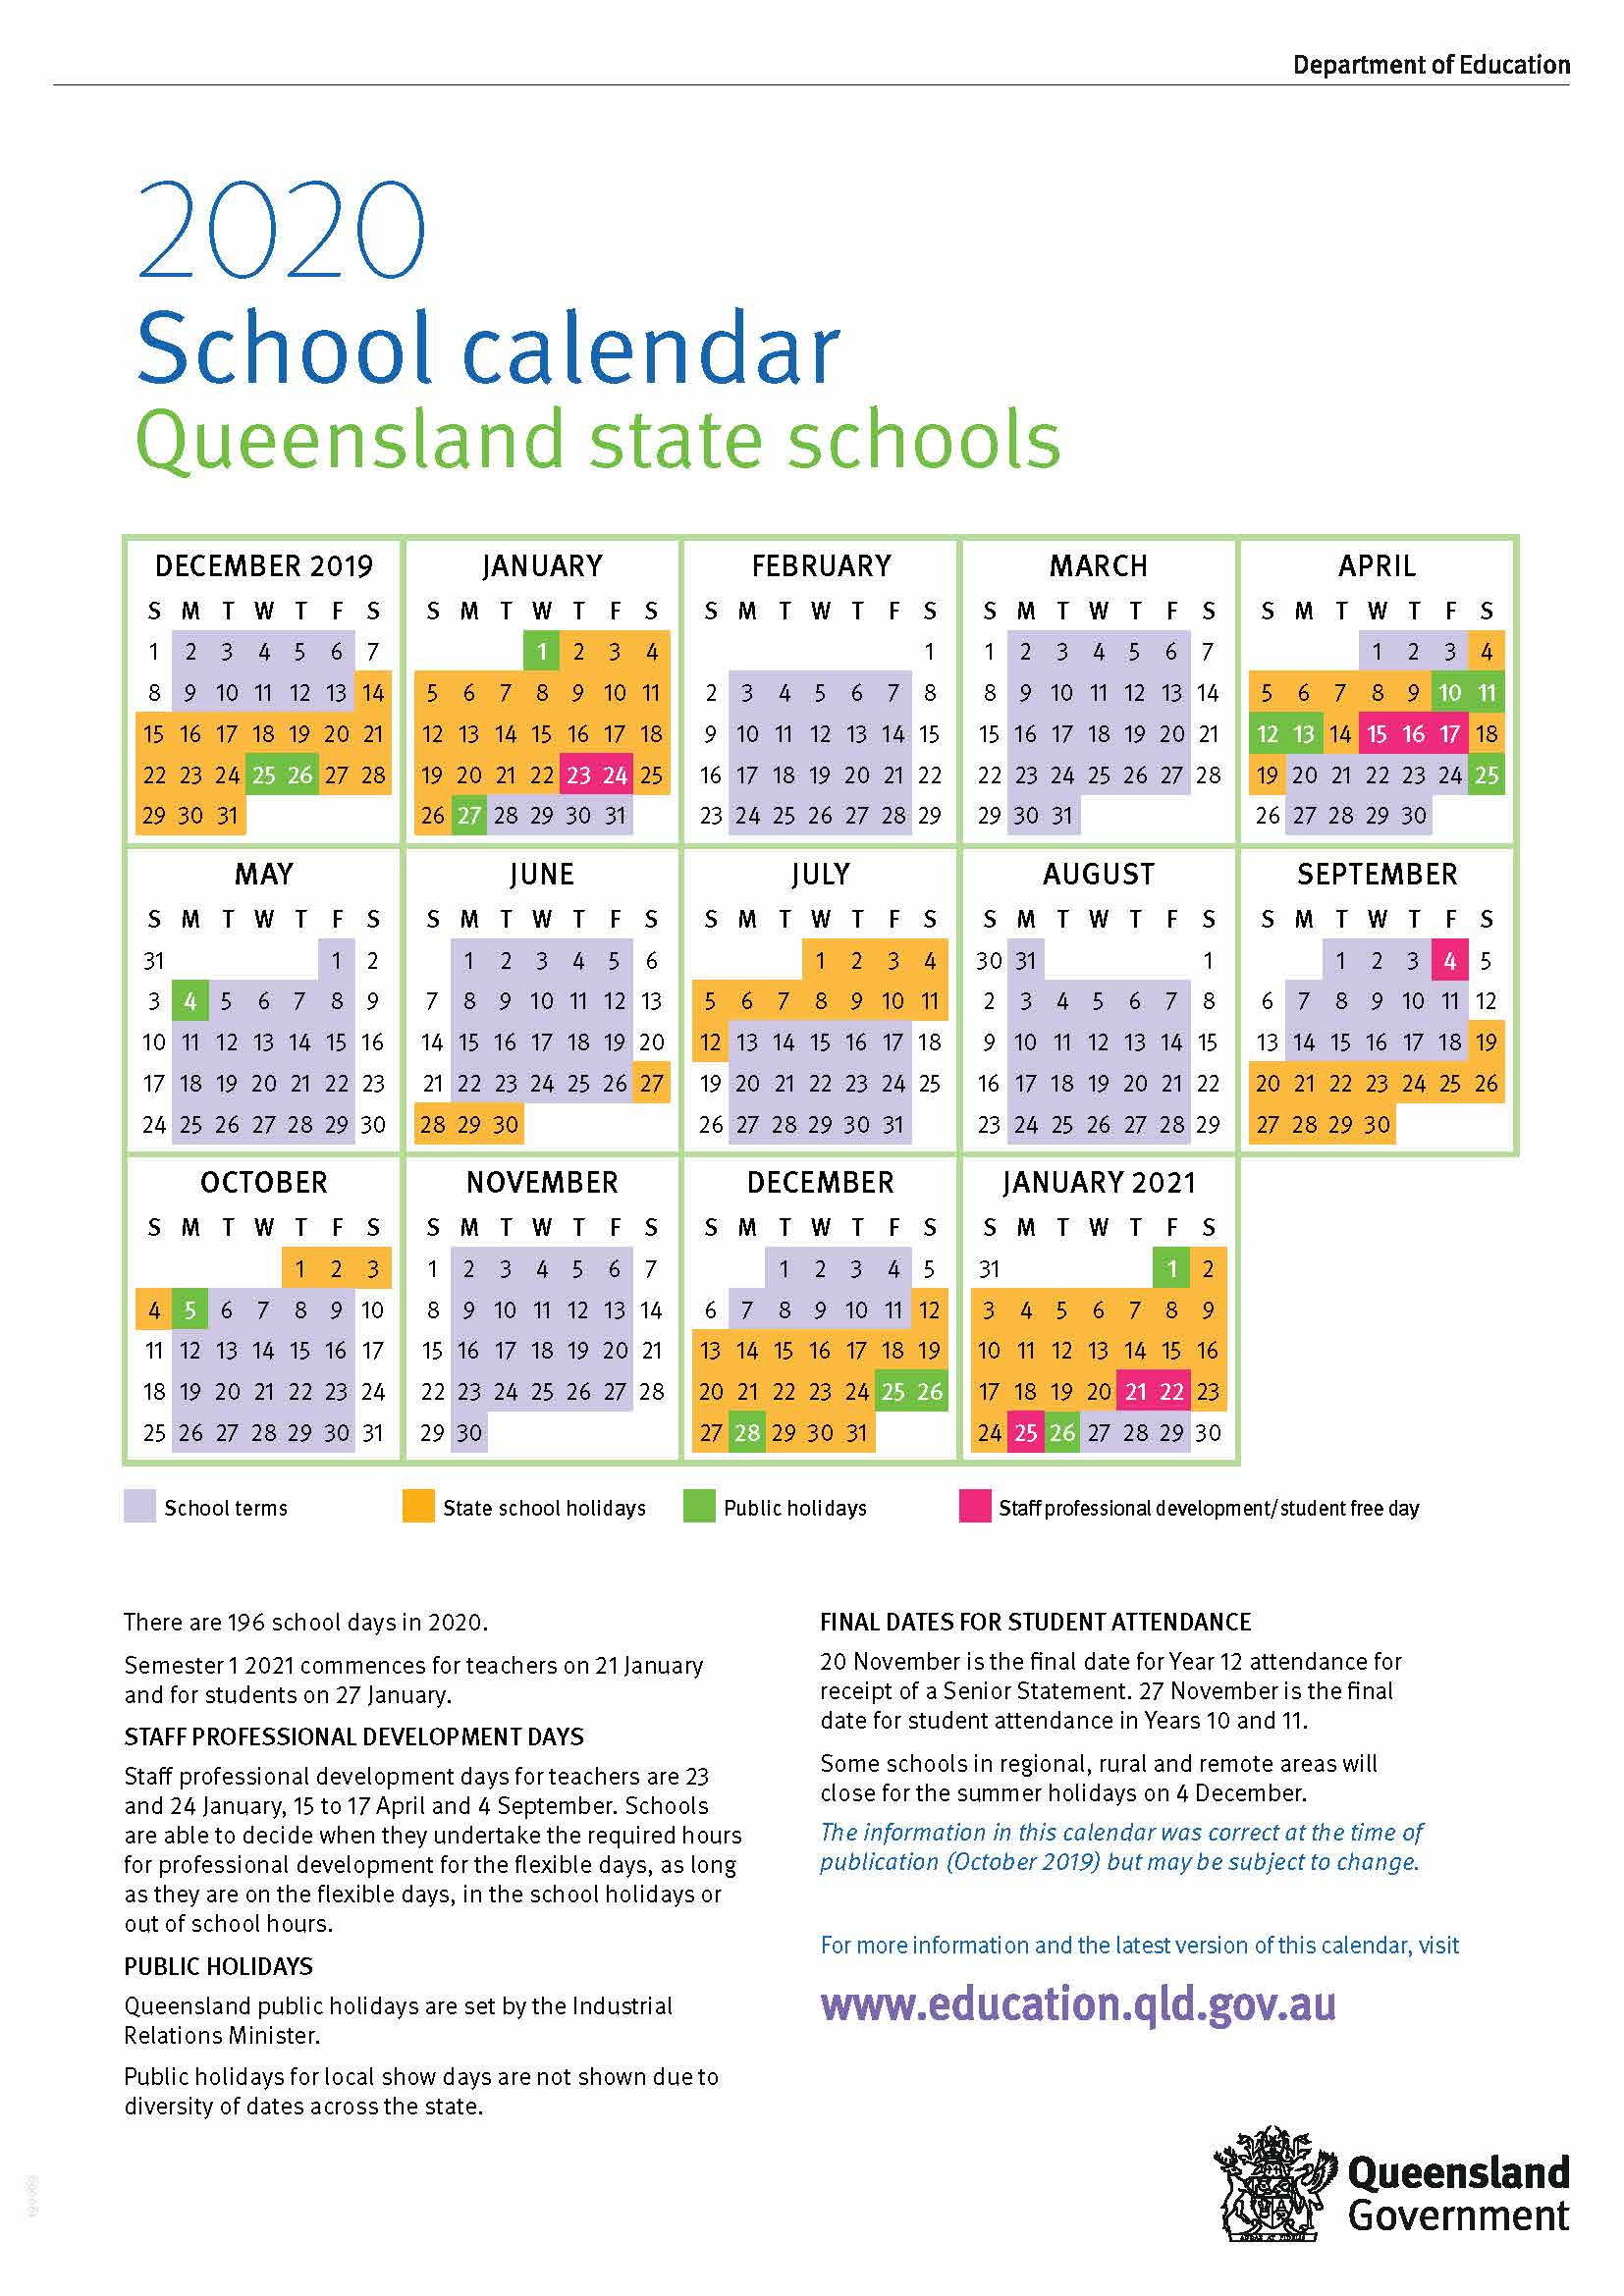 2020 Queensland State School Calendar